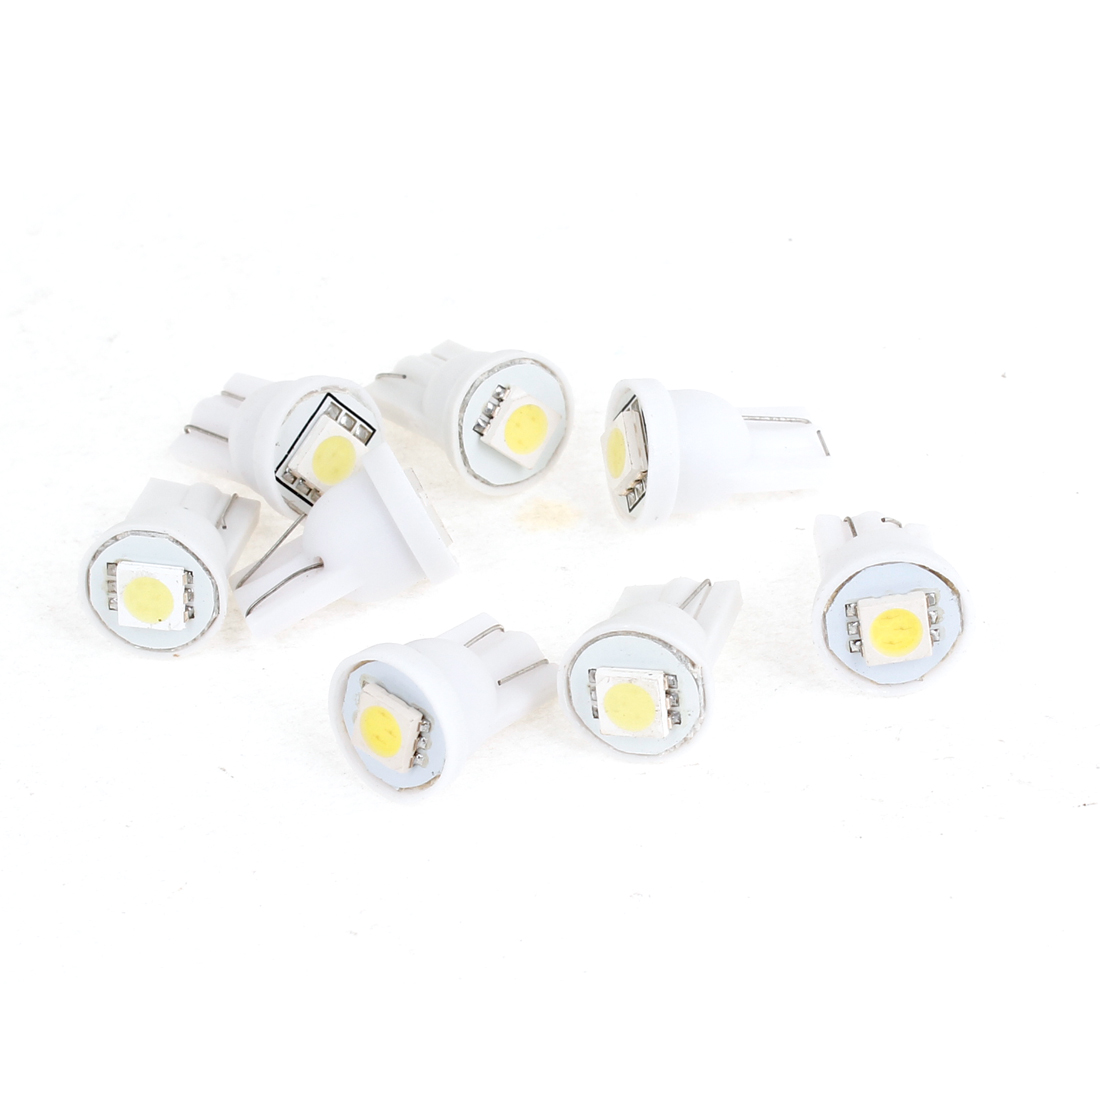 8 Pcs T10 194 168 W5W White 5050 1-SMD LED Dashboard Light Bulbs 12V for Car